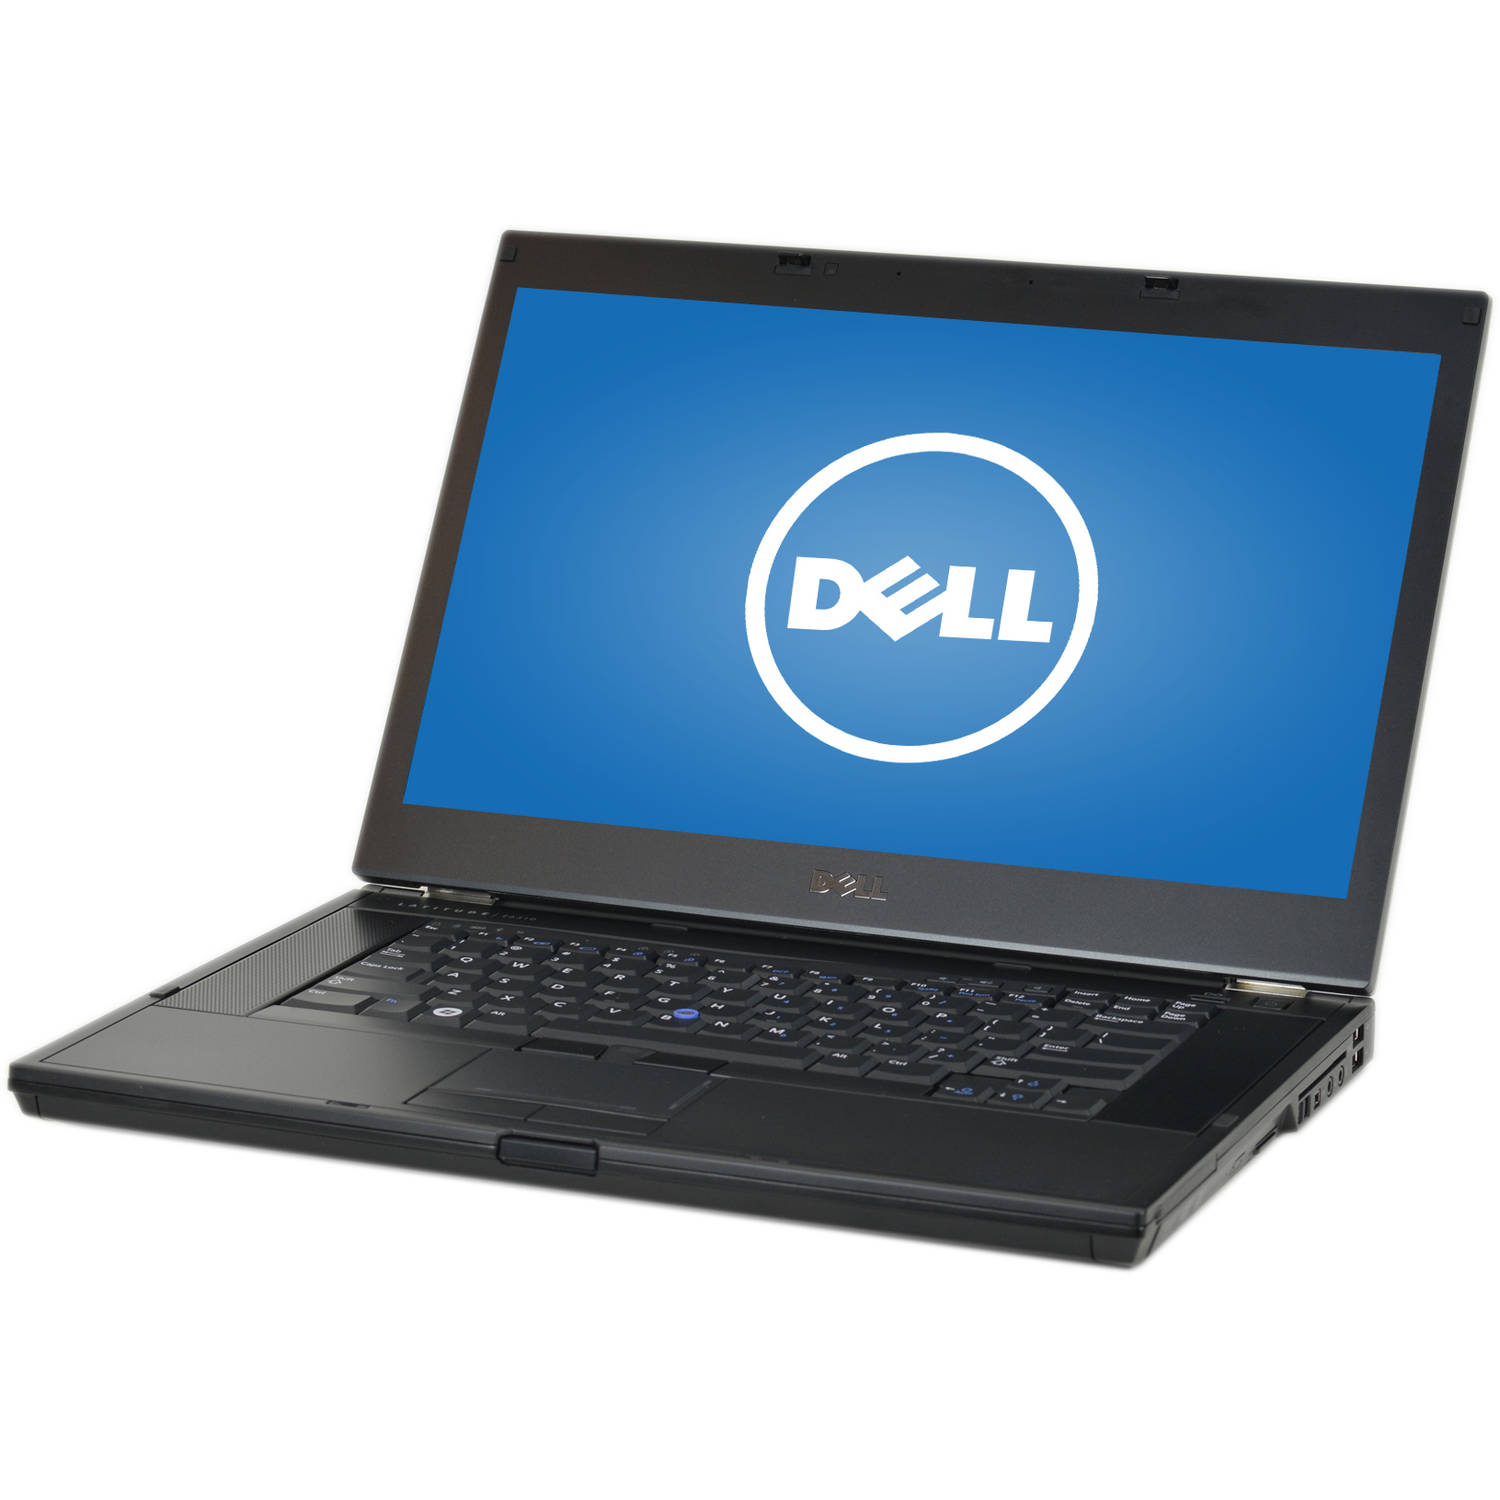 "Refurbished Dell Silver 15.6"" Latitude E6510 Laptop PC with Intel Core i5-520M Processor, 4GB Memory, 250GB Hard Drive and Windows 10 Home"